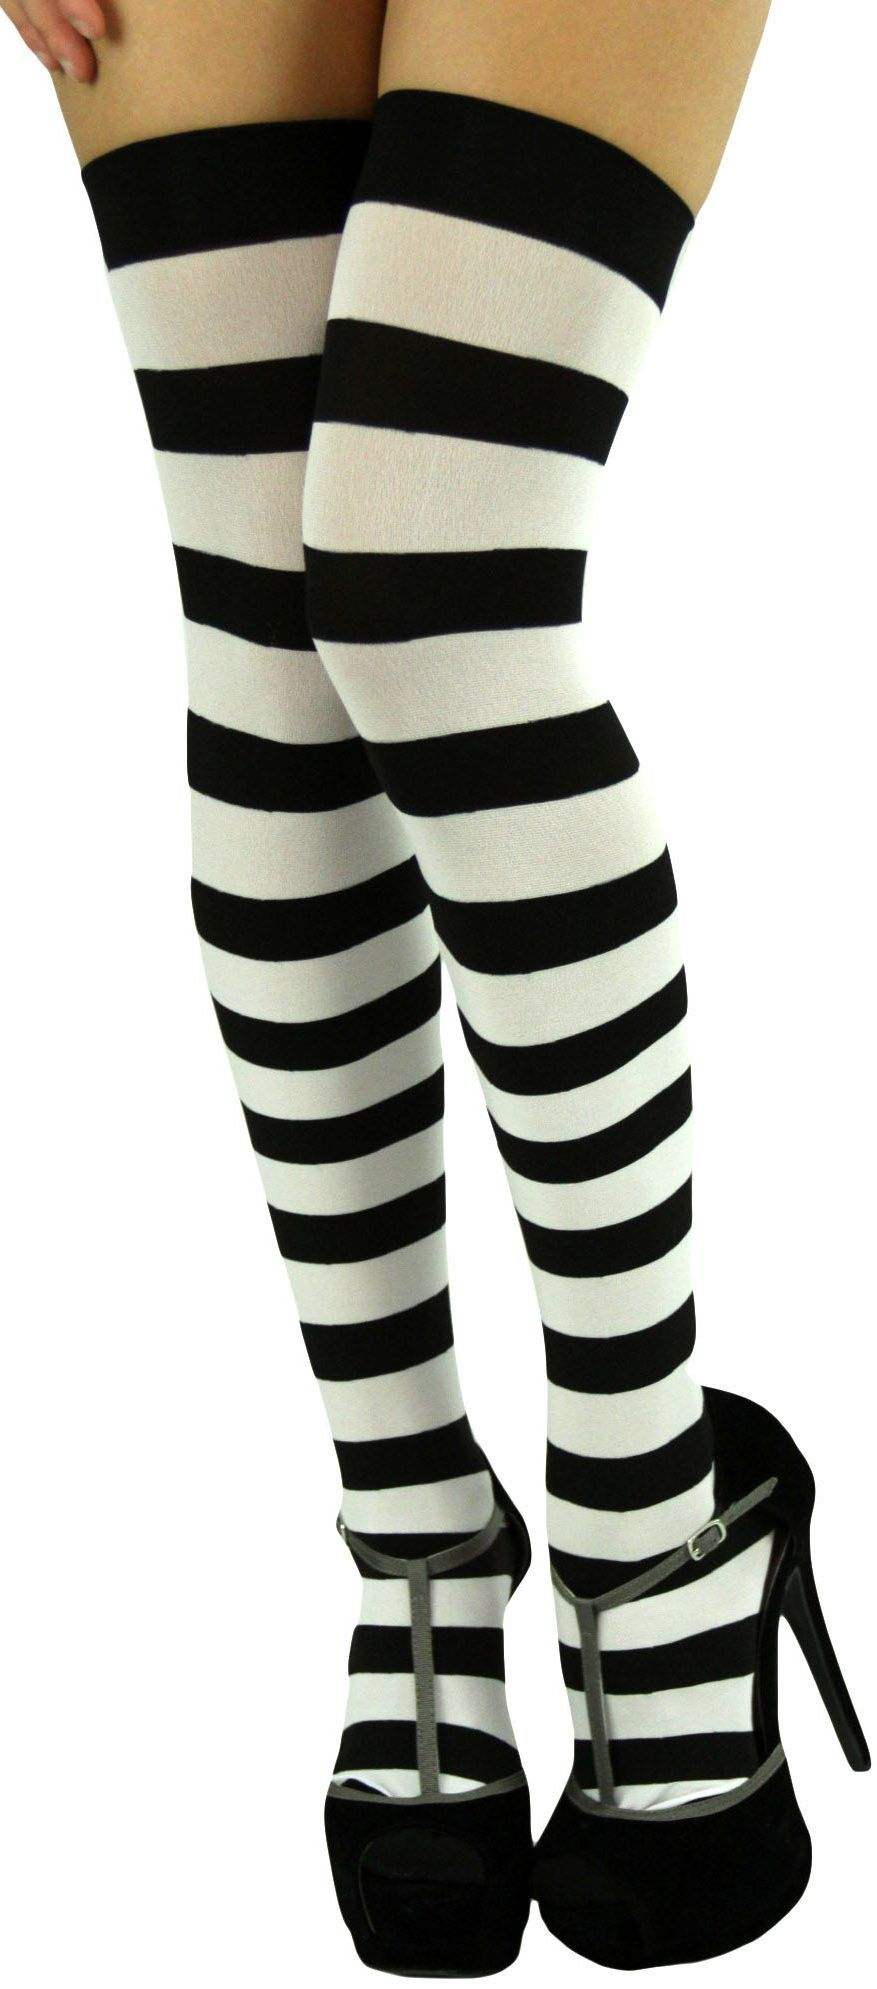 39f62d9f8055 ToBeInStyle Women's Wide Vertical Striped Thigh Hi Stockings (Black w/  H.Pink Stripes) at Amazon Women's Clothing store: